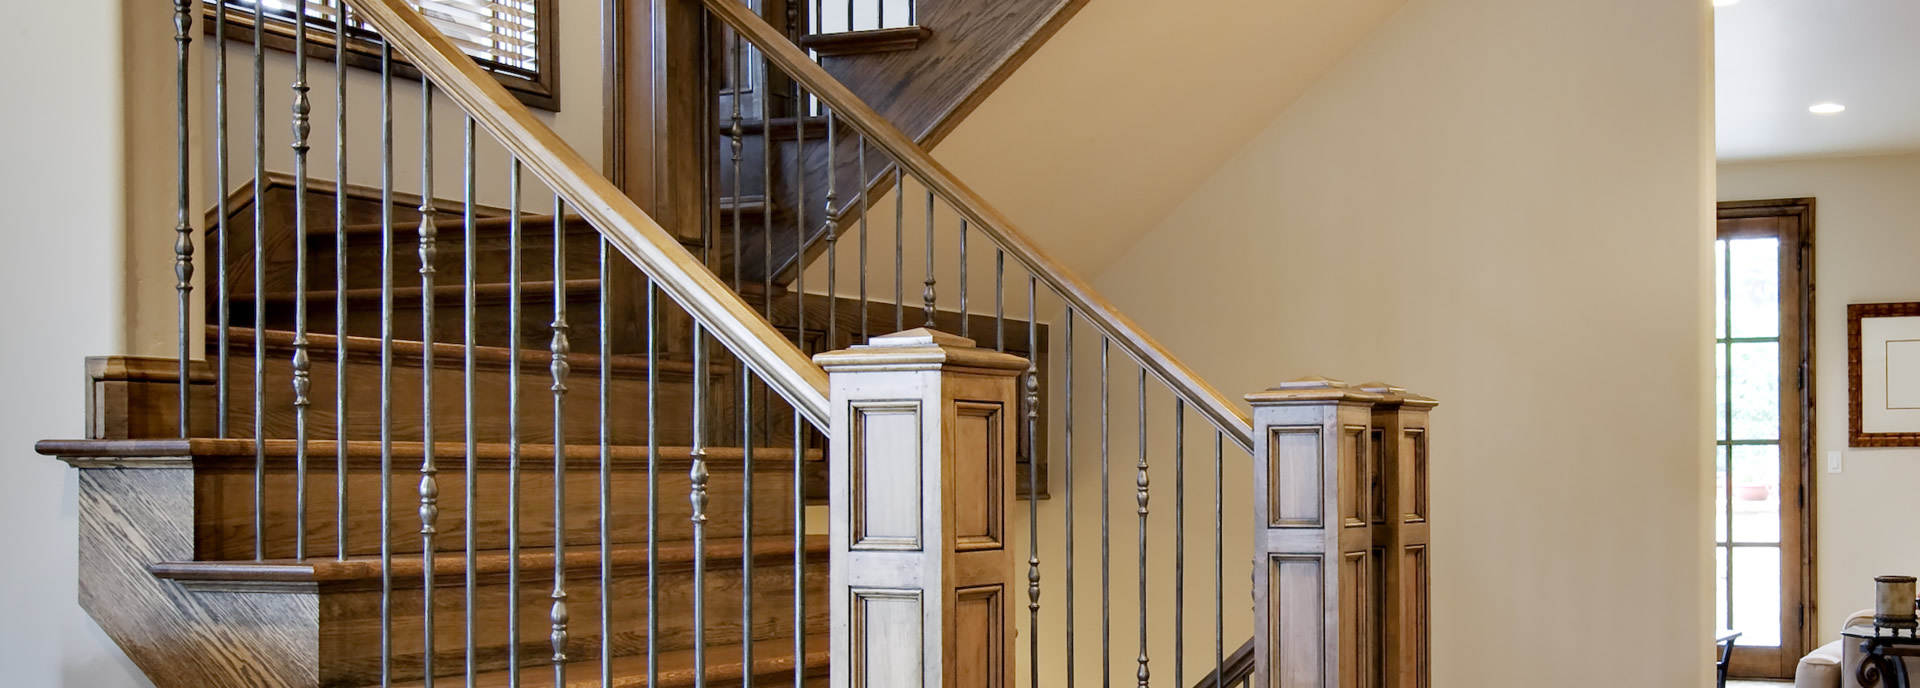 Top 5 Reason Residents Love Round Staircases Alpharetta, GA